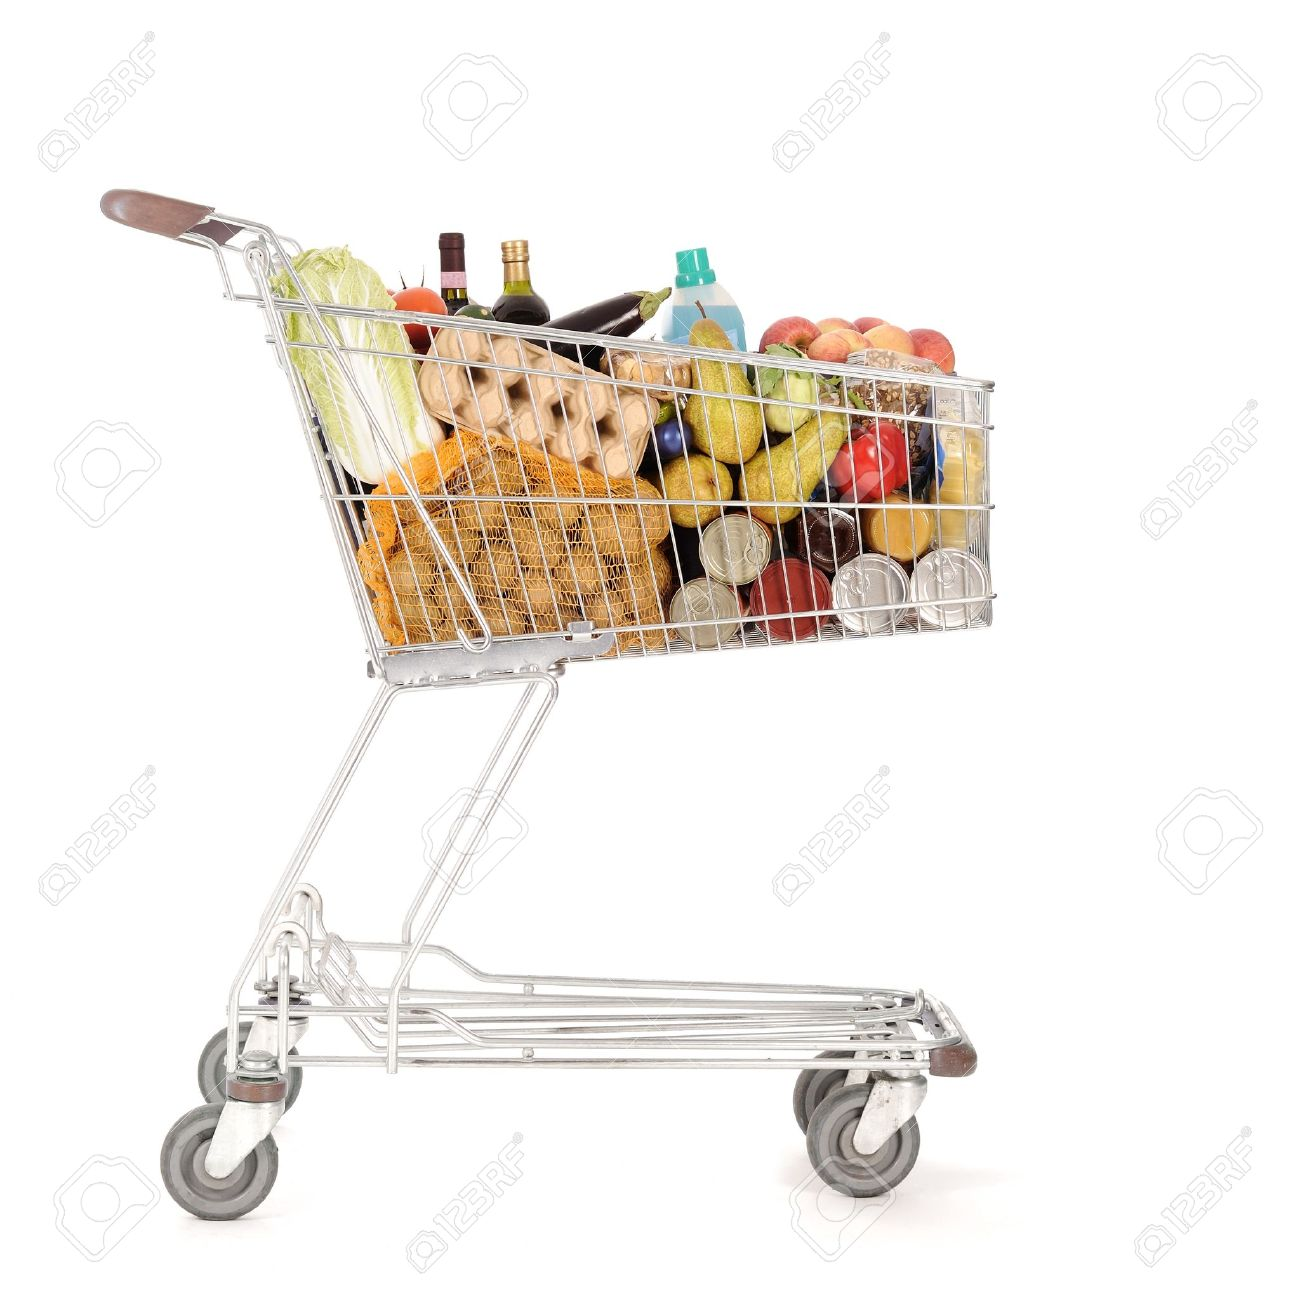 supermarket shopping cart full of foodstuff food Stock Photo - 11106243